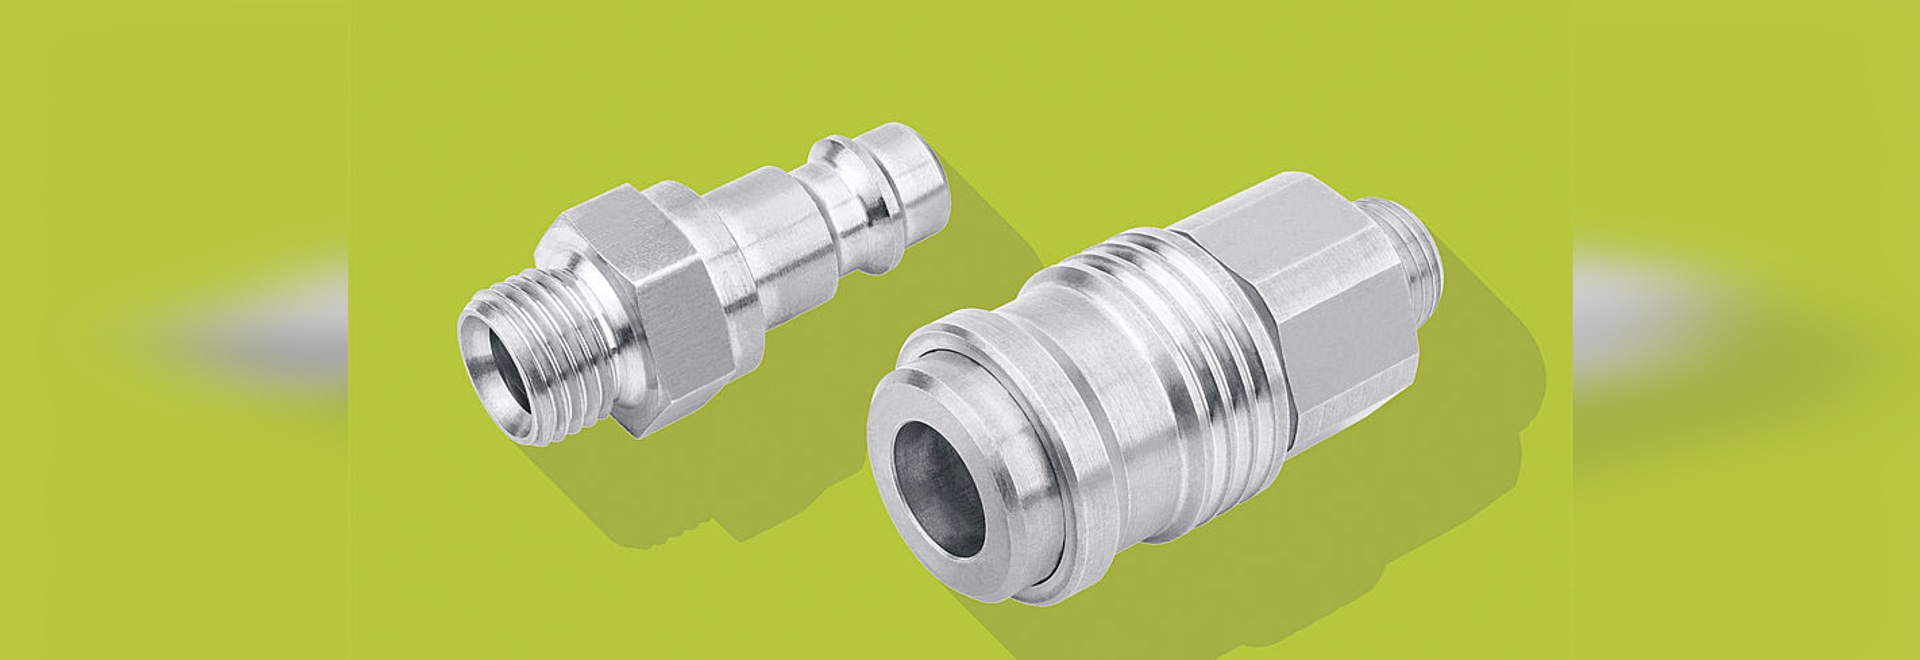 Stainless steel check valves - INOXLINE with new versions for demanding applications